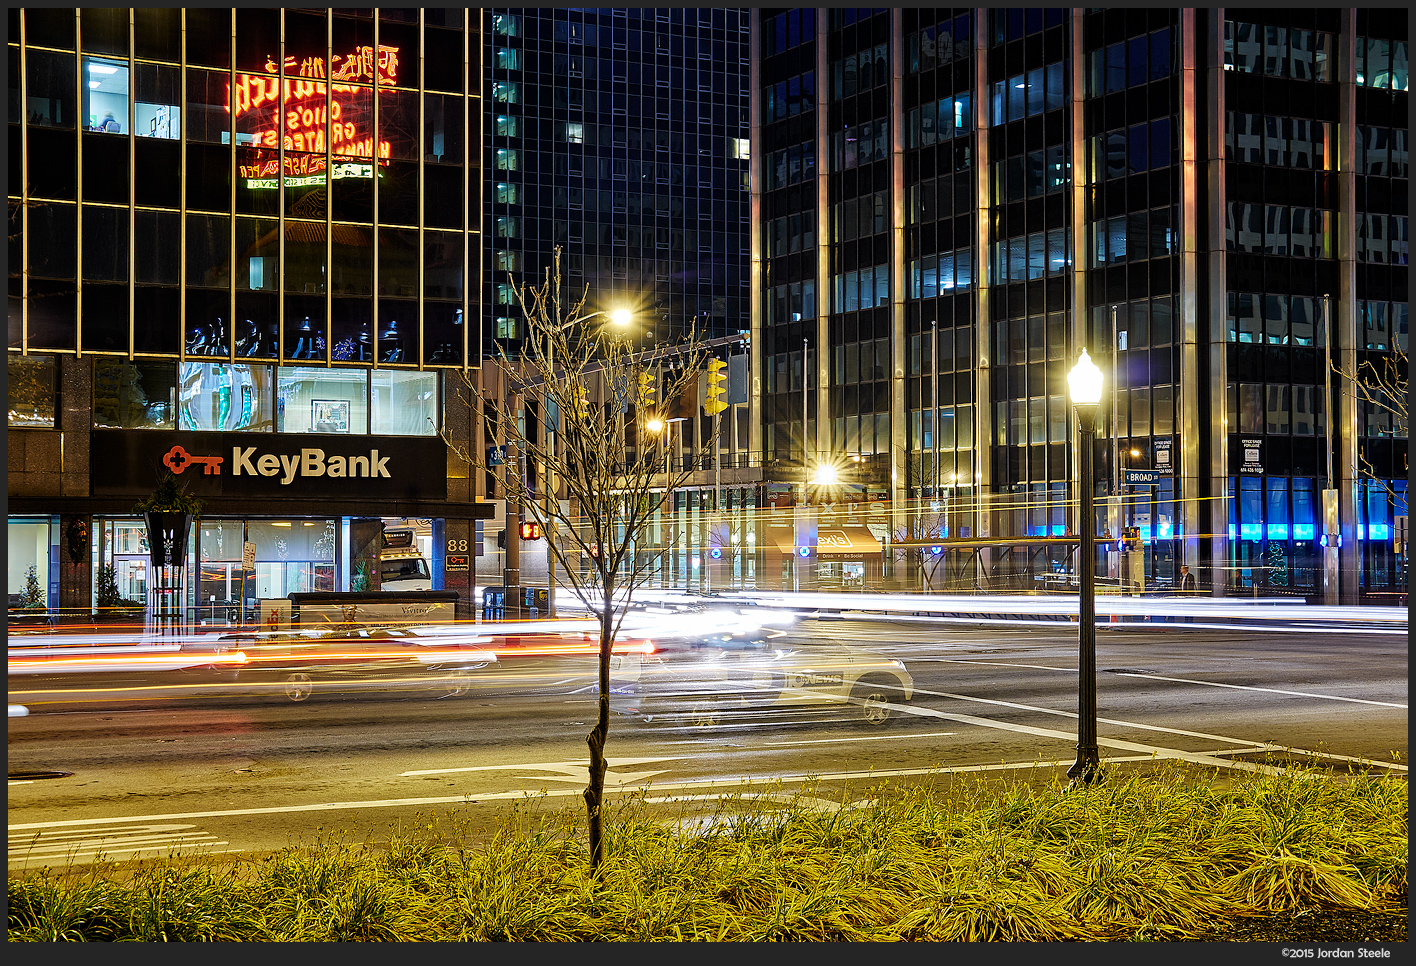 Third and Broad - Fujifilm X-T1 with Fujinon XF 35mm f/2 R WR @